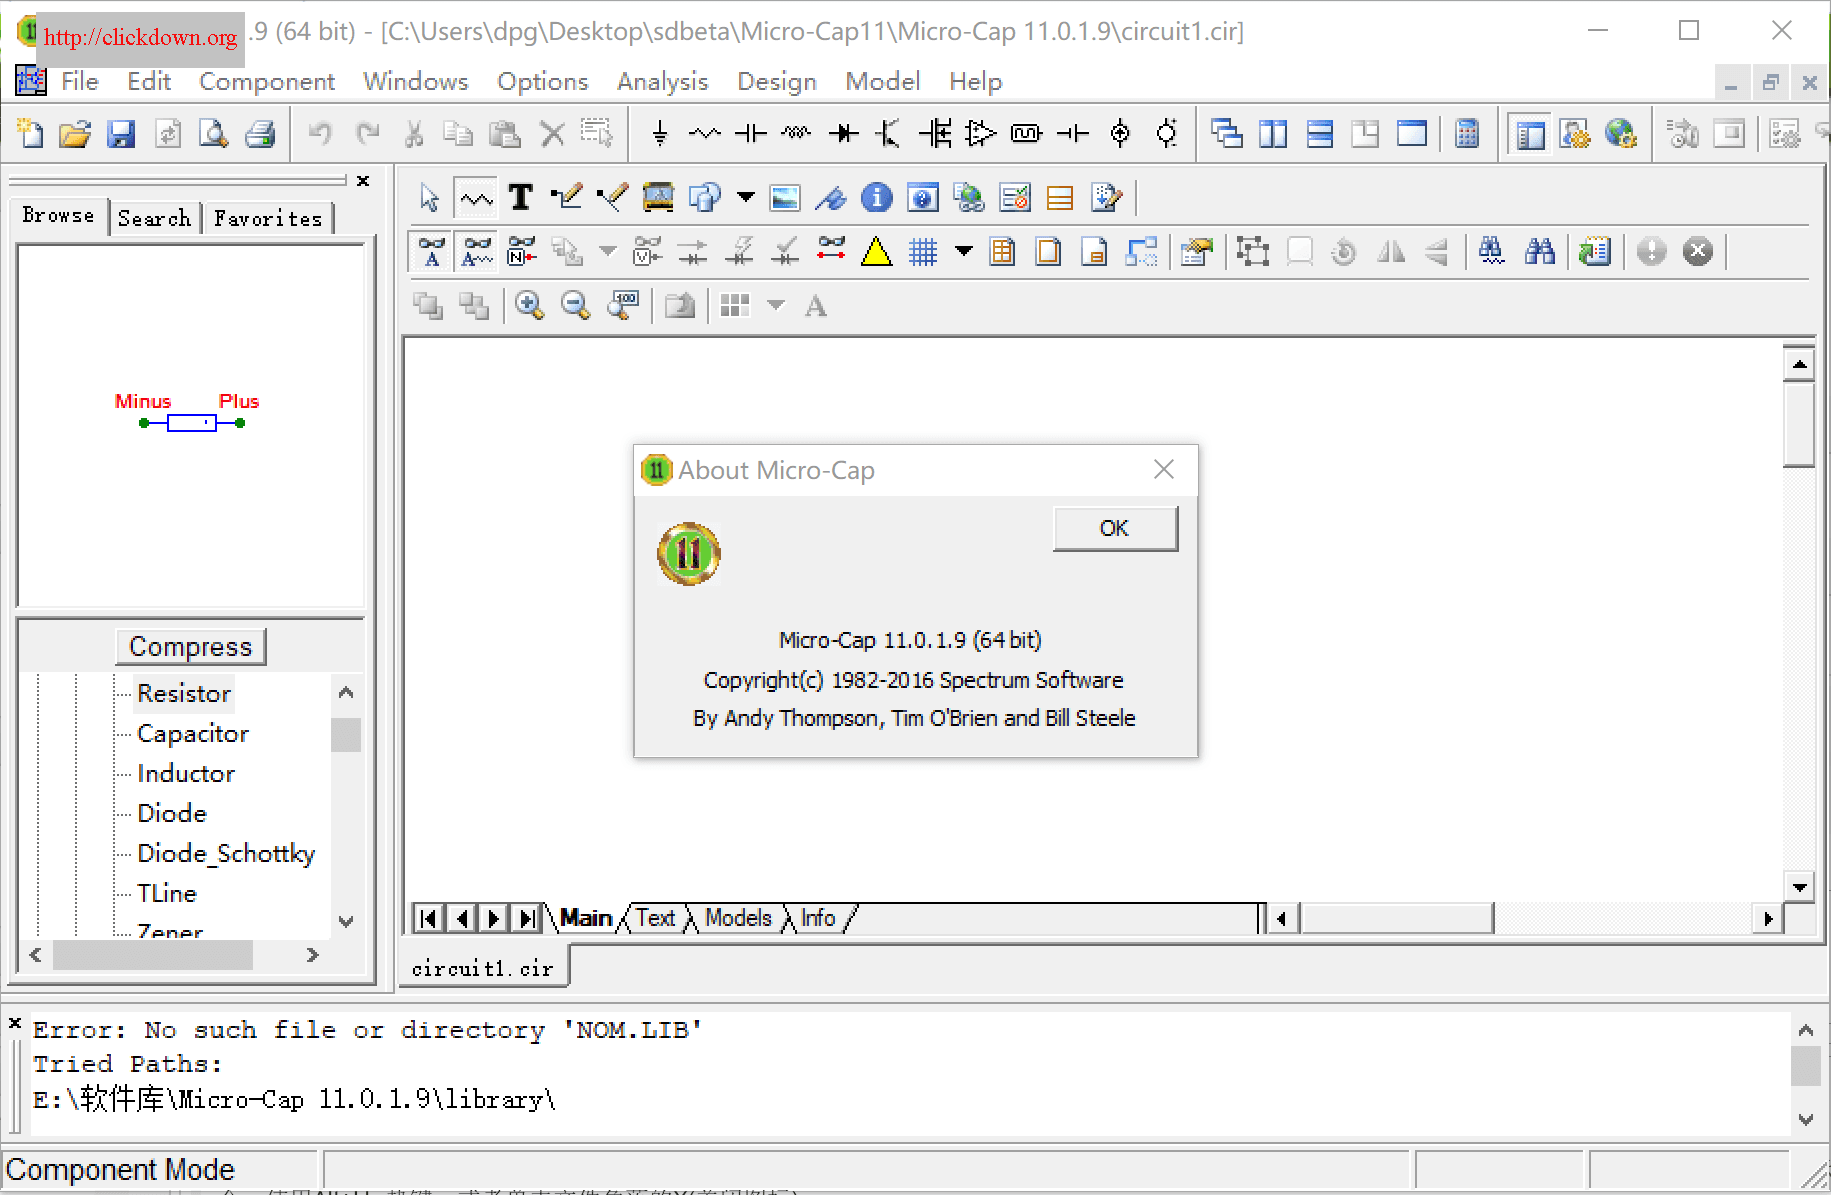 Working with Micro-Cap 11.0.1.9 x64 full license